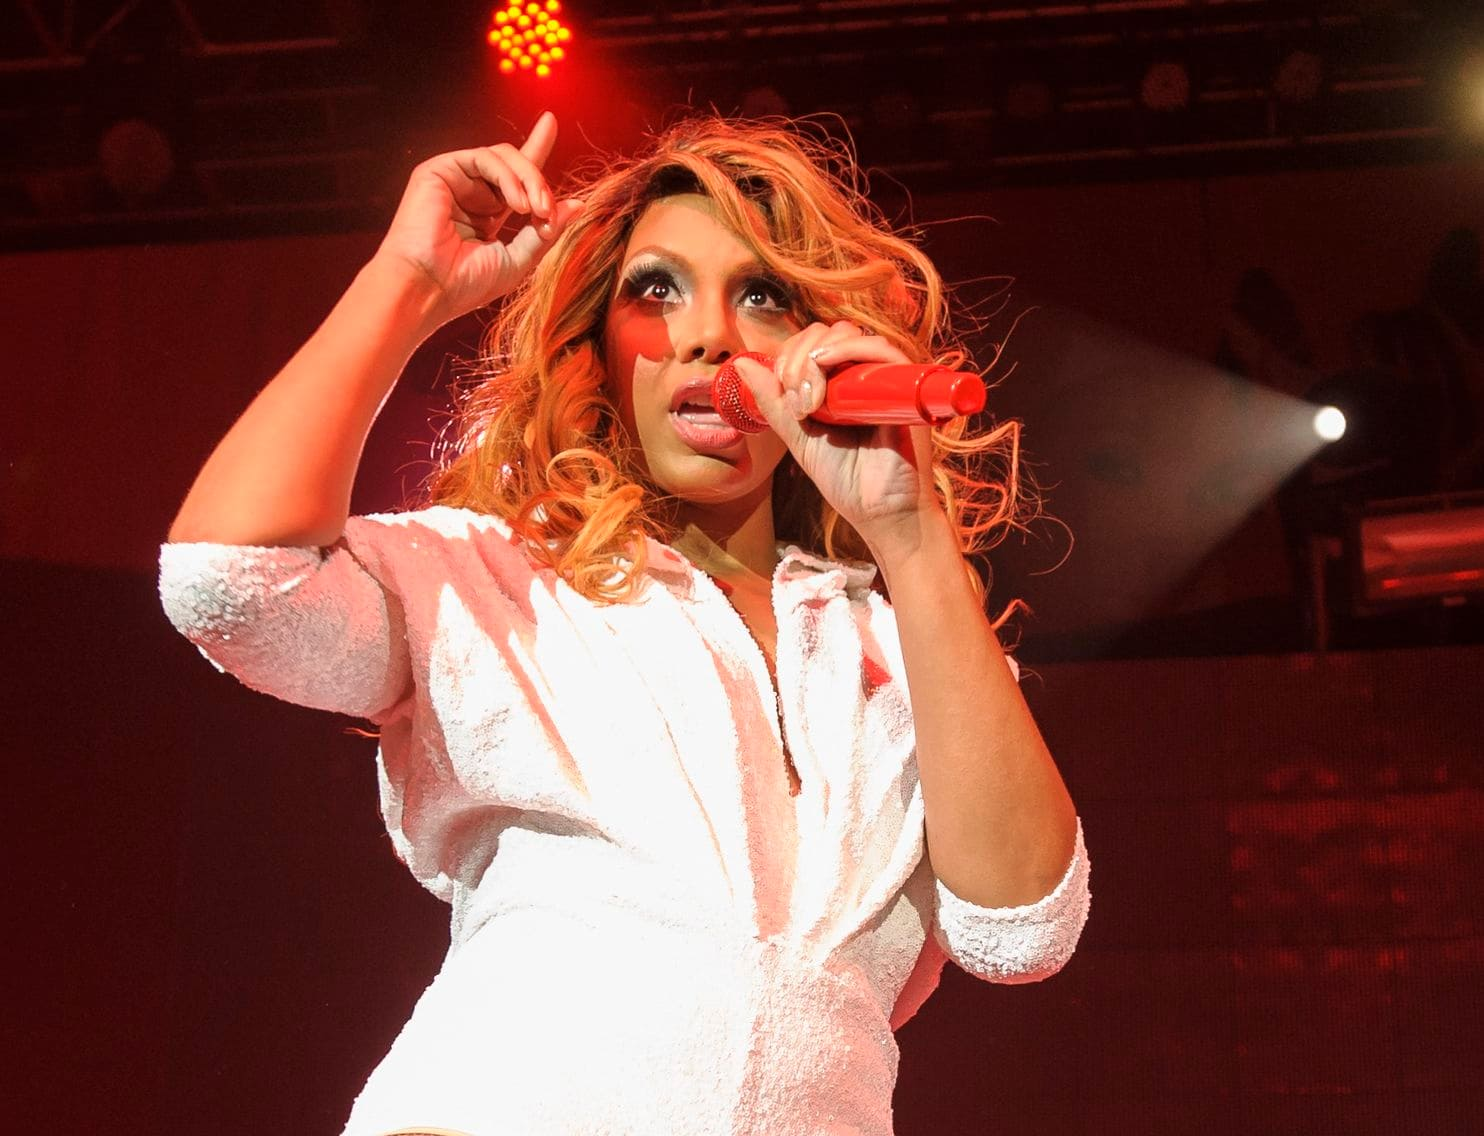 """tamar-braxton-wins-the-reality-royalty-award-fans-are-happy-but-ask-her-to-be-nicer-to-david-adefeso-and-stop-humiliating-him"""